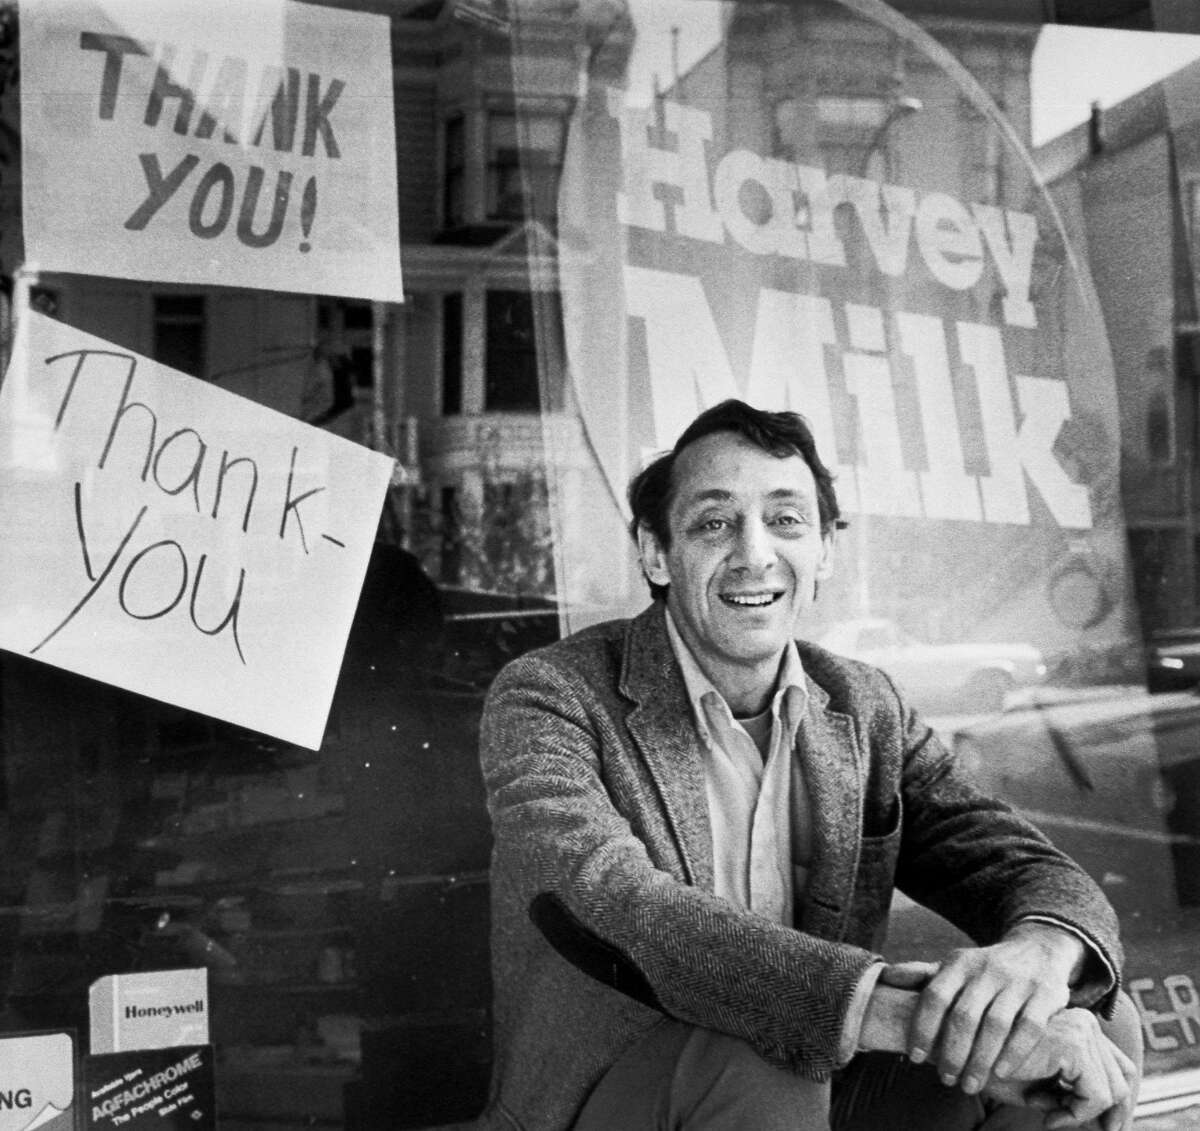 Harvey Milk sits outside his camera shop in The Castro in a Nov. 9, 1977 photo. California Gov. Gavin Newsom proclaimed May 22 to be Harvey Milk Day, honoring the late San Francisco supervisor and civil rights icon who was killed in 1978.